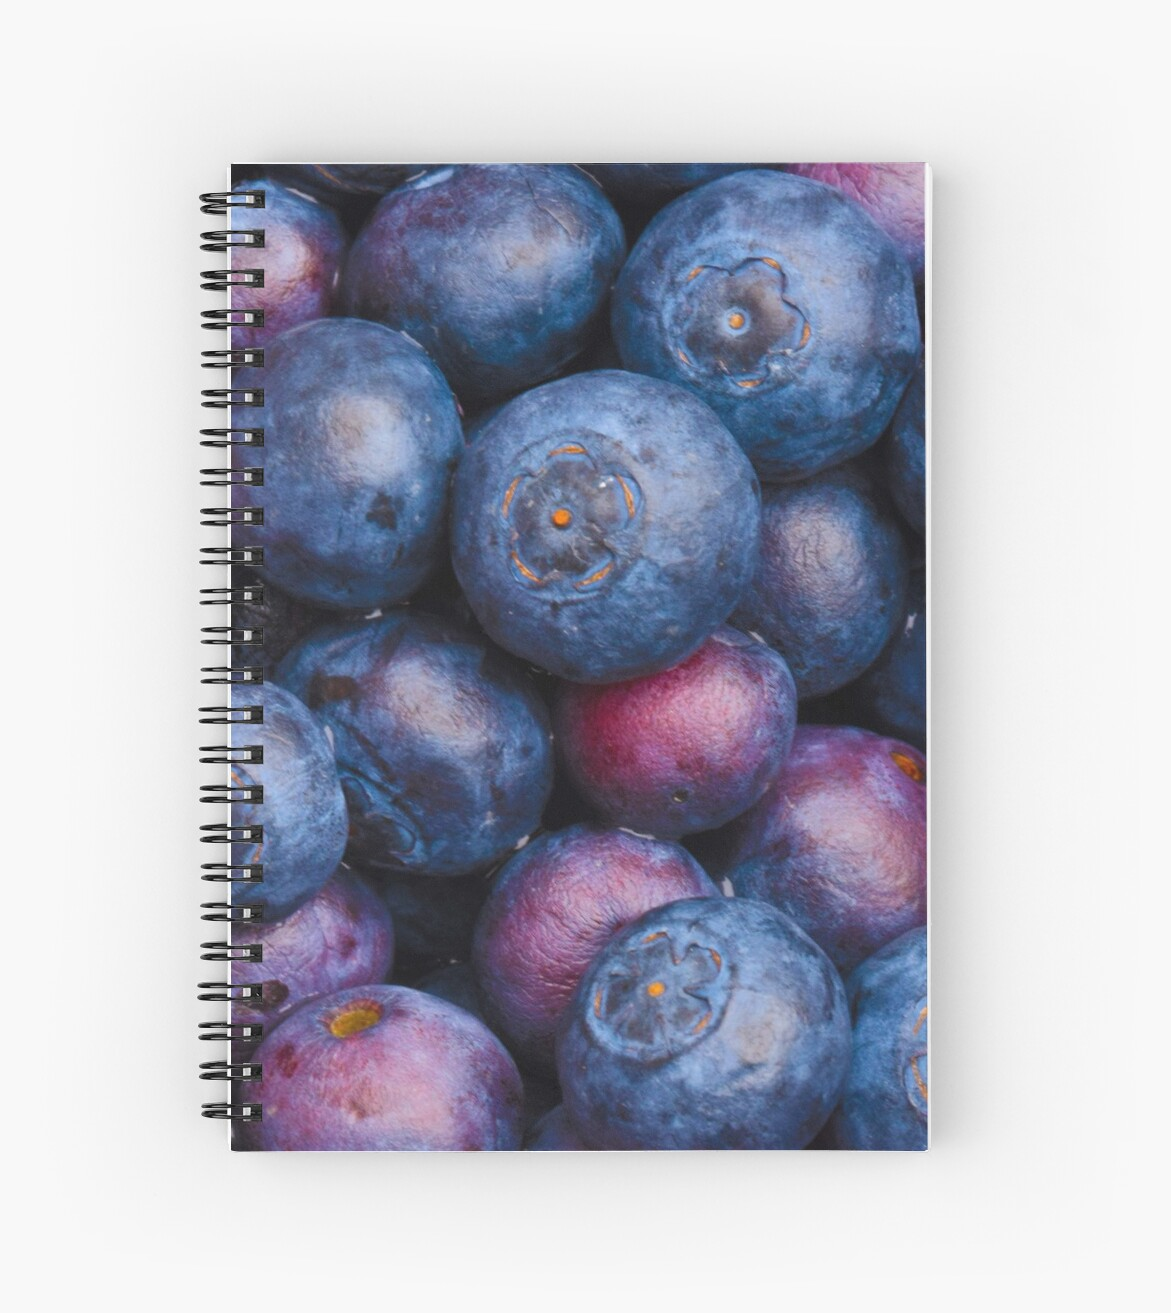 Blueberries by AndreuCalaf